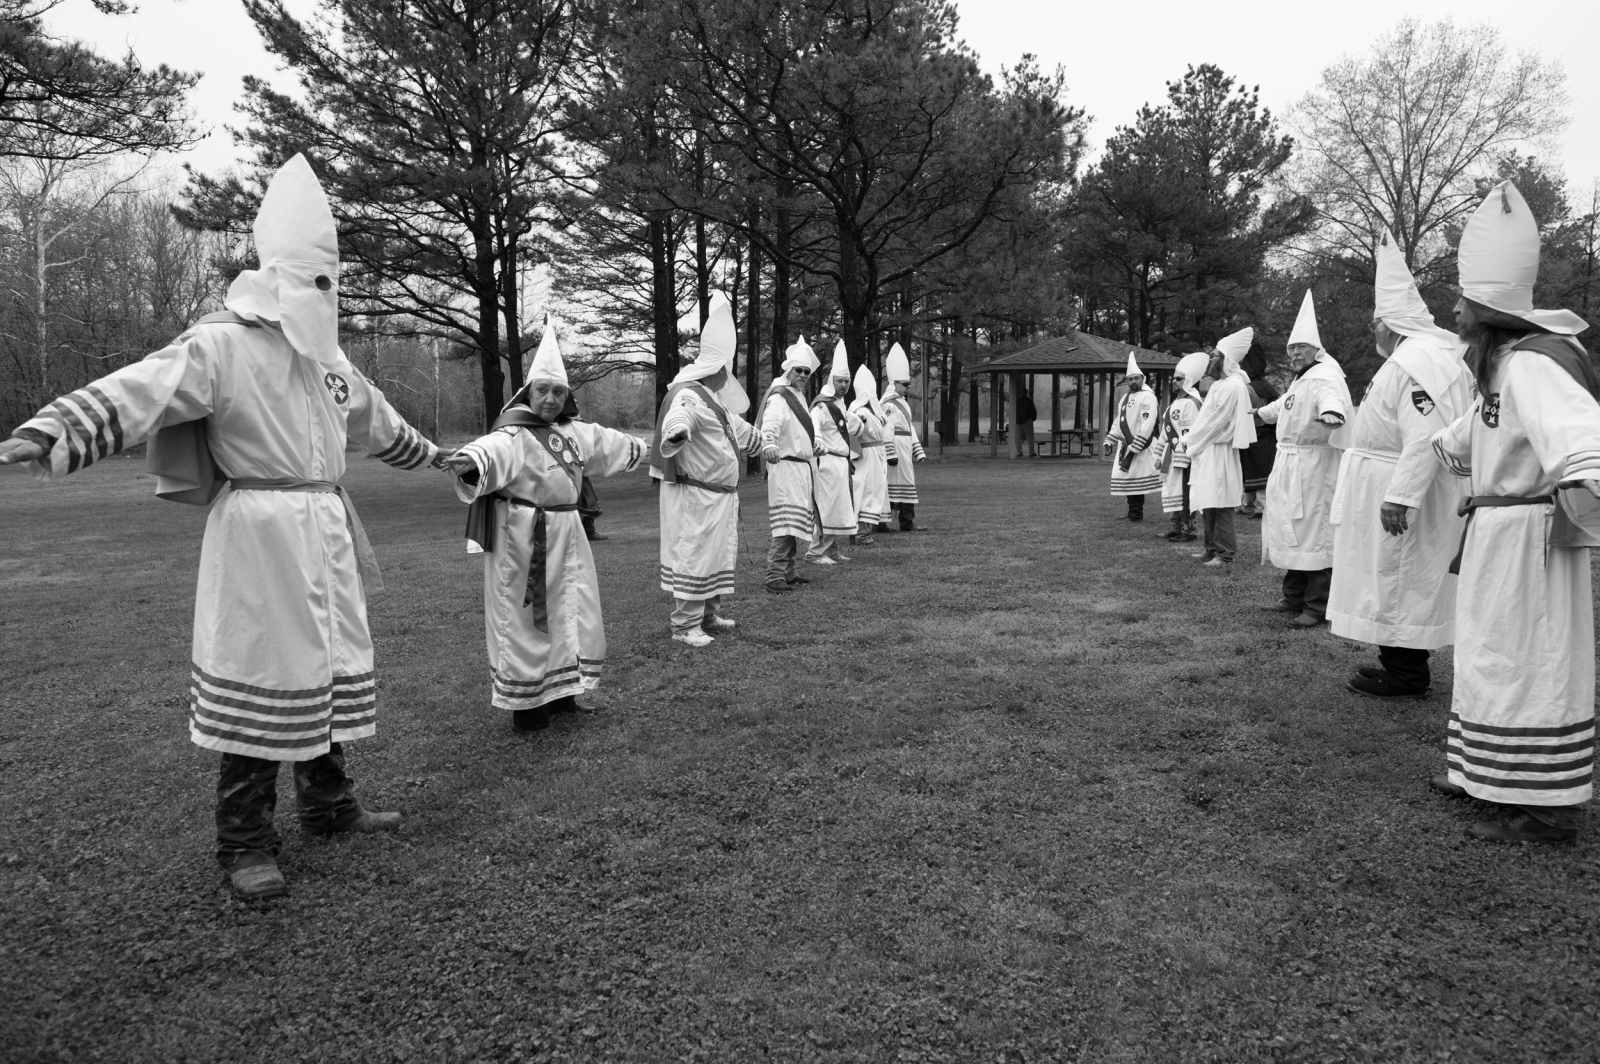 Missouri.Klan members go into a military-type formation in preparation for a Ku Klux Klan wedding ritual ceremony.